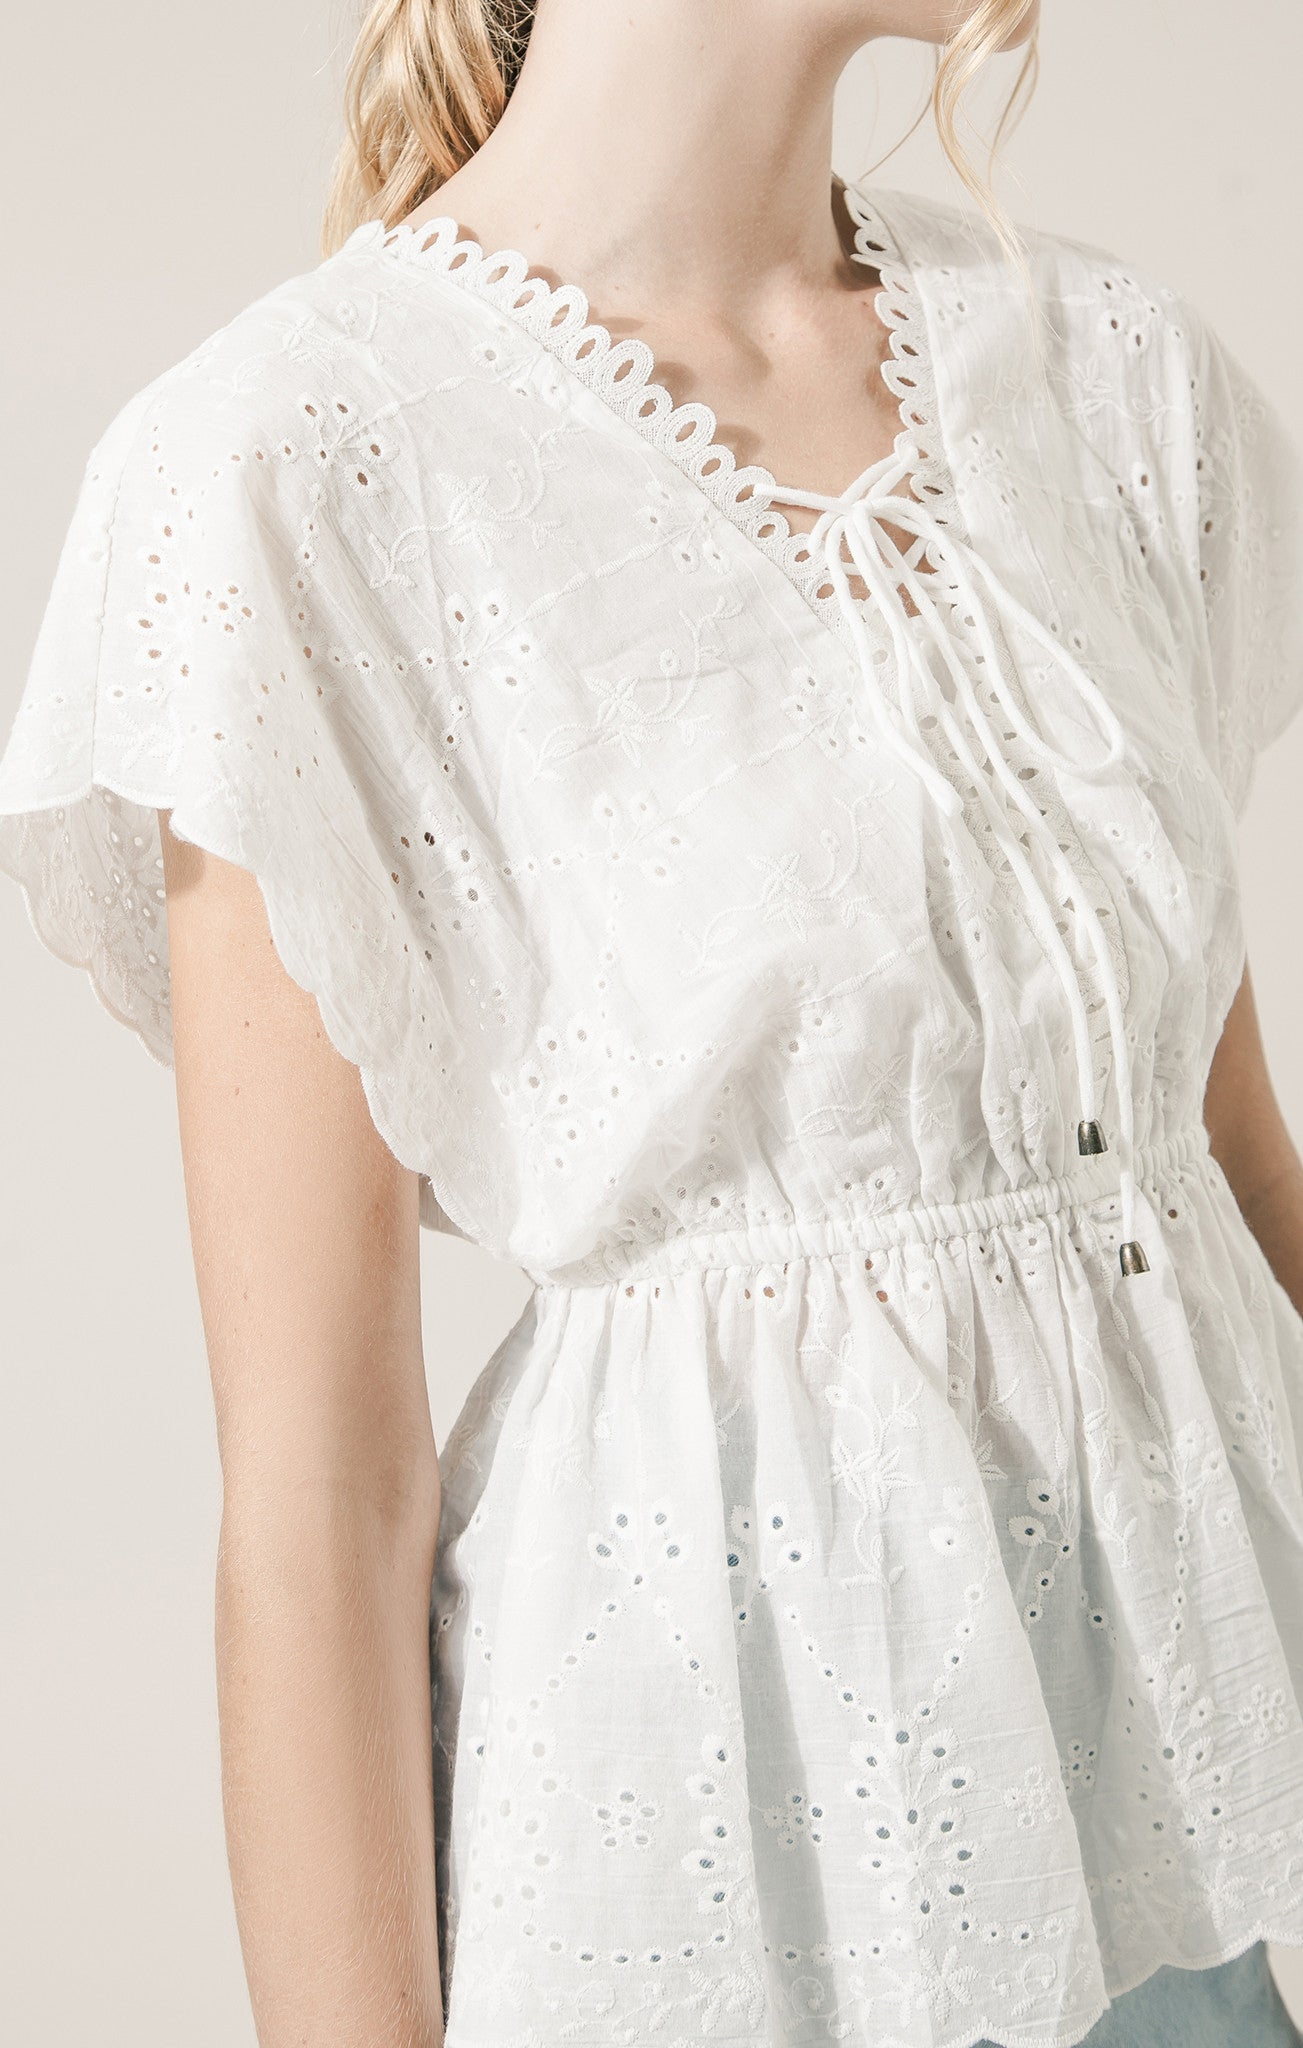 LACE UP DETAIL COTTON EYELET TOP